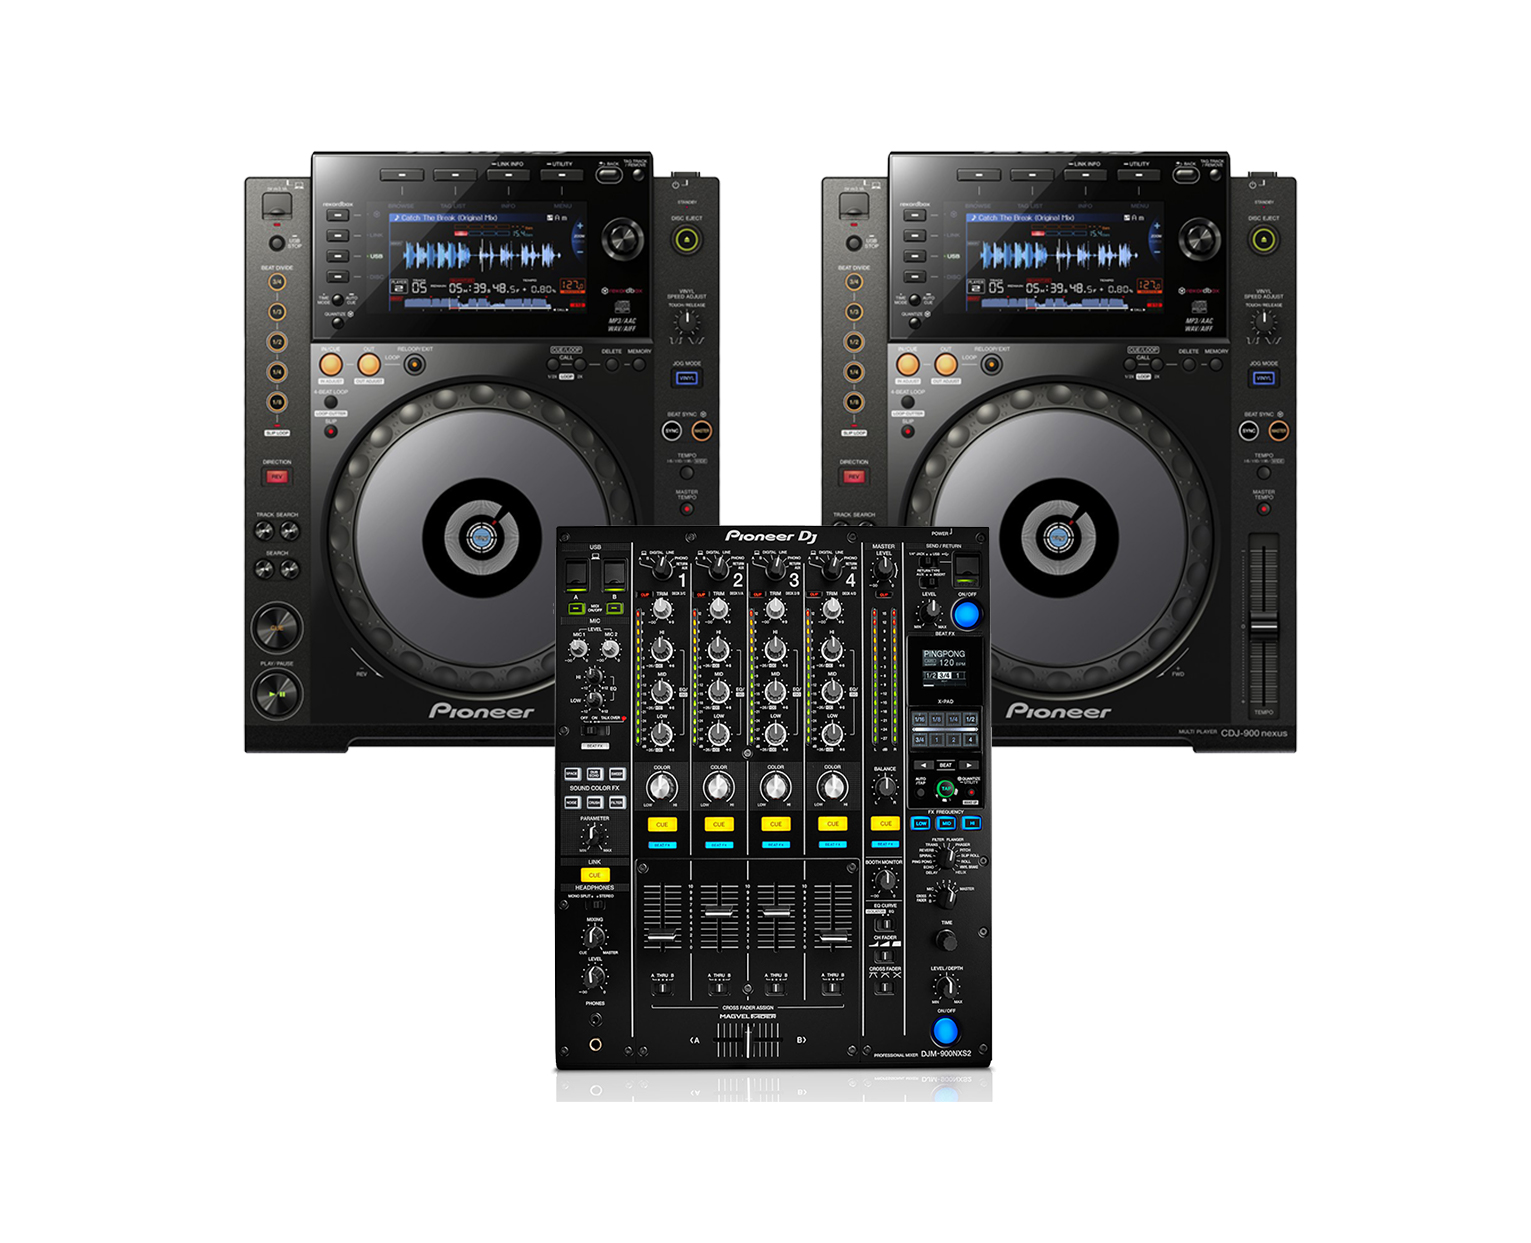 PIONEER CDJ-900NXS DJ CONTROLLER DRIVERS WINDOWS XP